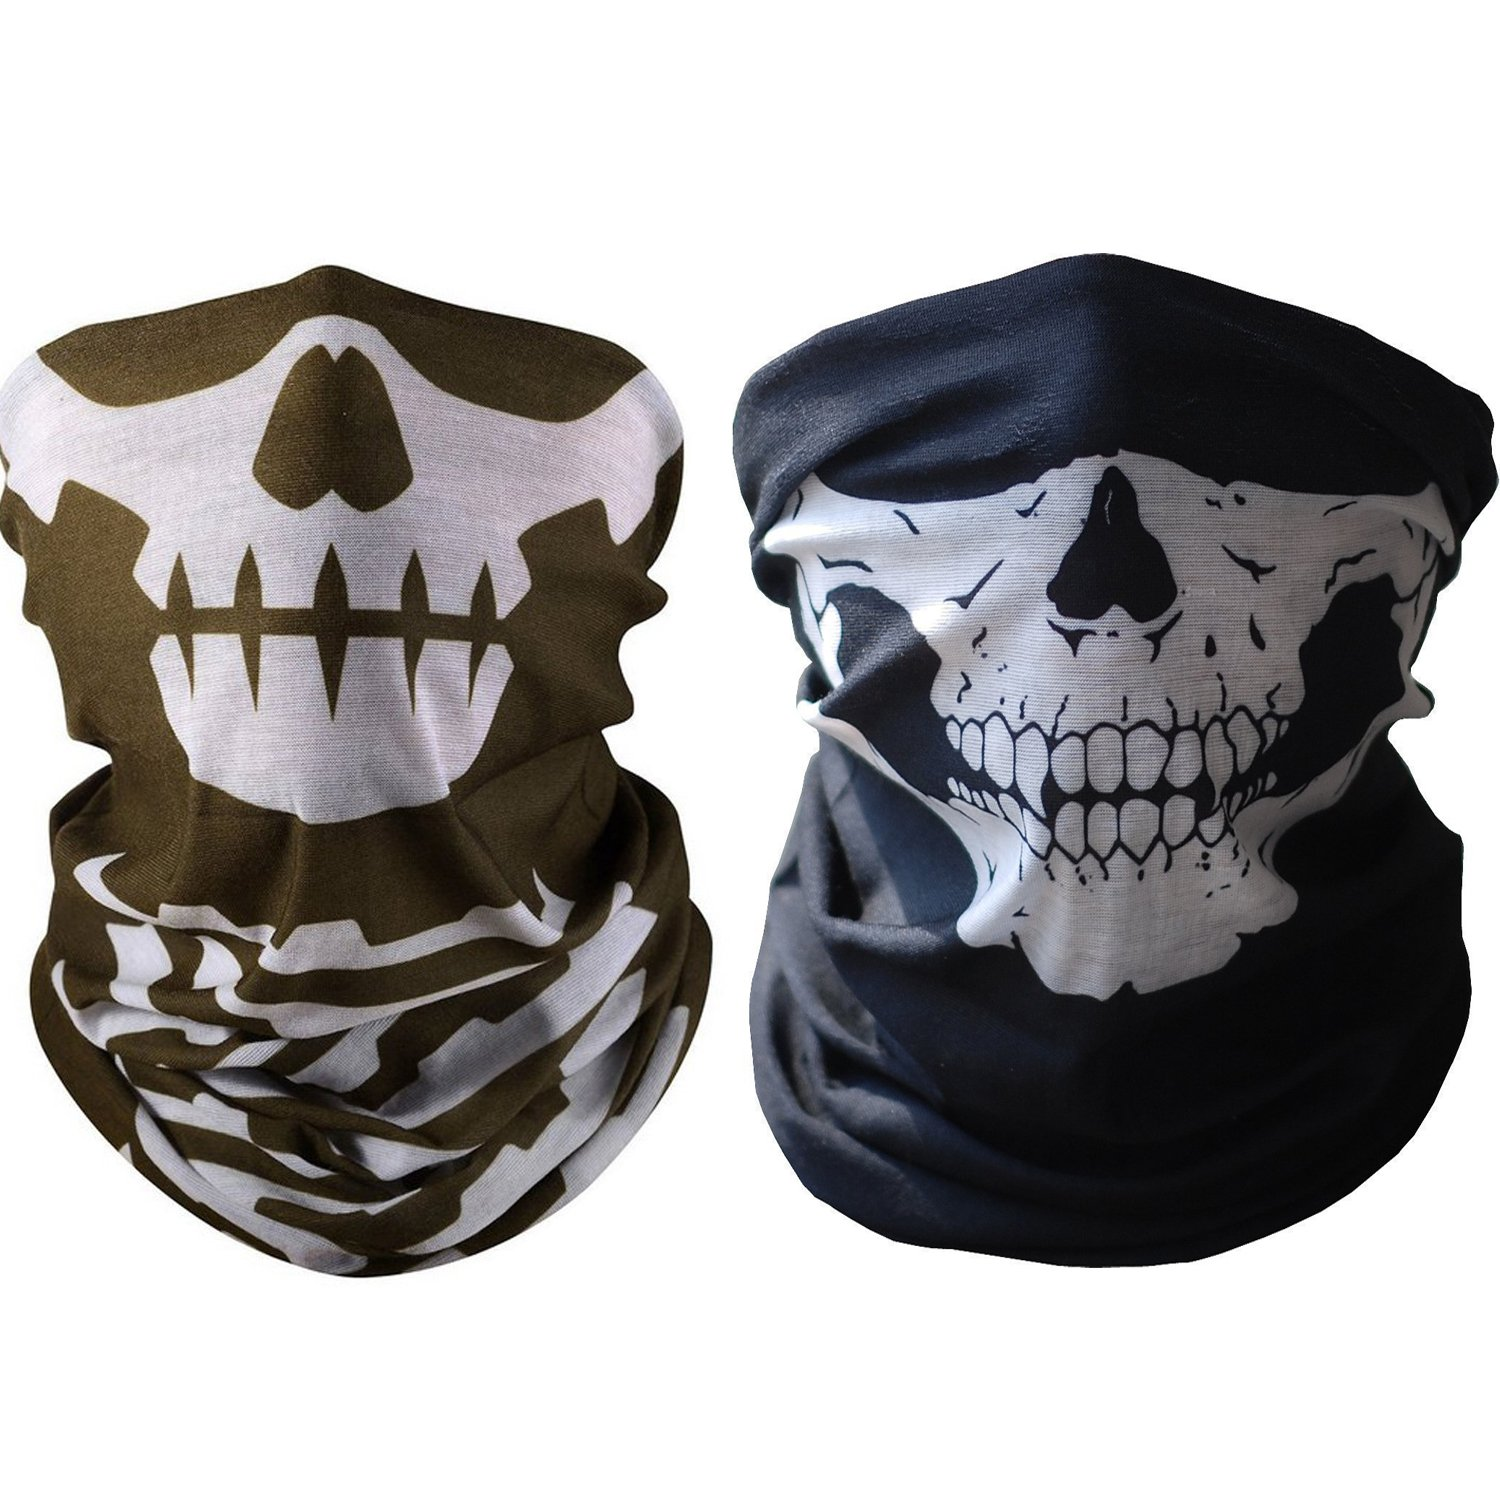 Alxcio Unique Stretchable Tubular Skull Face Mask Windproof Seamless Headwear Neck Mask Outdoor Sport Ski Bike Riding Motorcycle ATV Cycling Snowboards, 2 Pack( Black+ Brown)